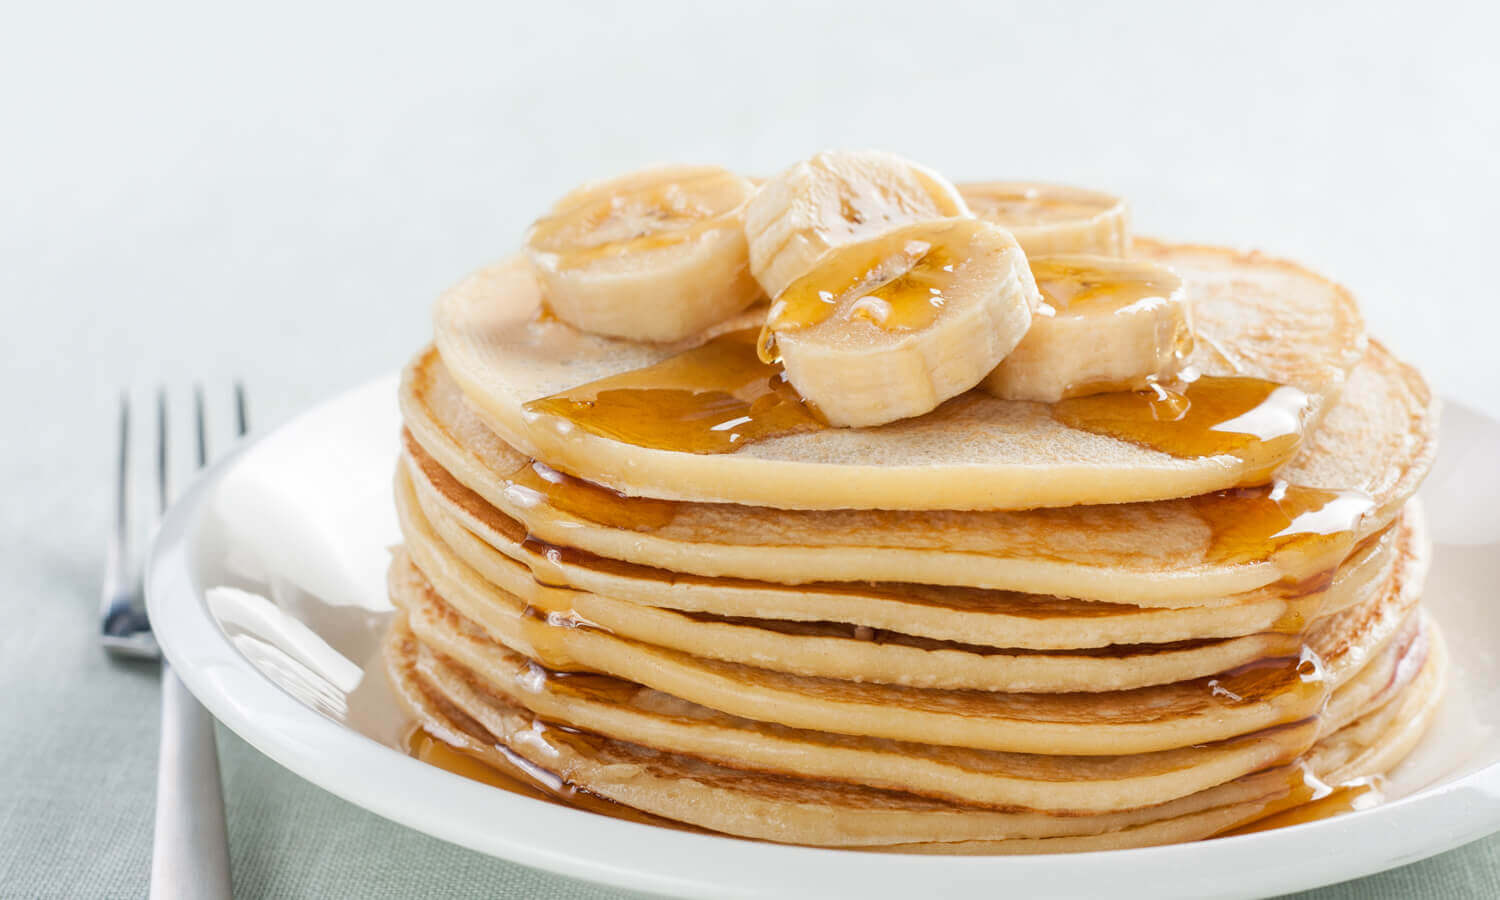 A healthy breakfast of banana pancakes.